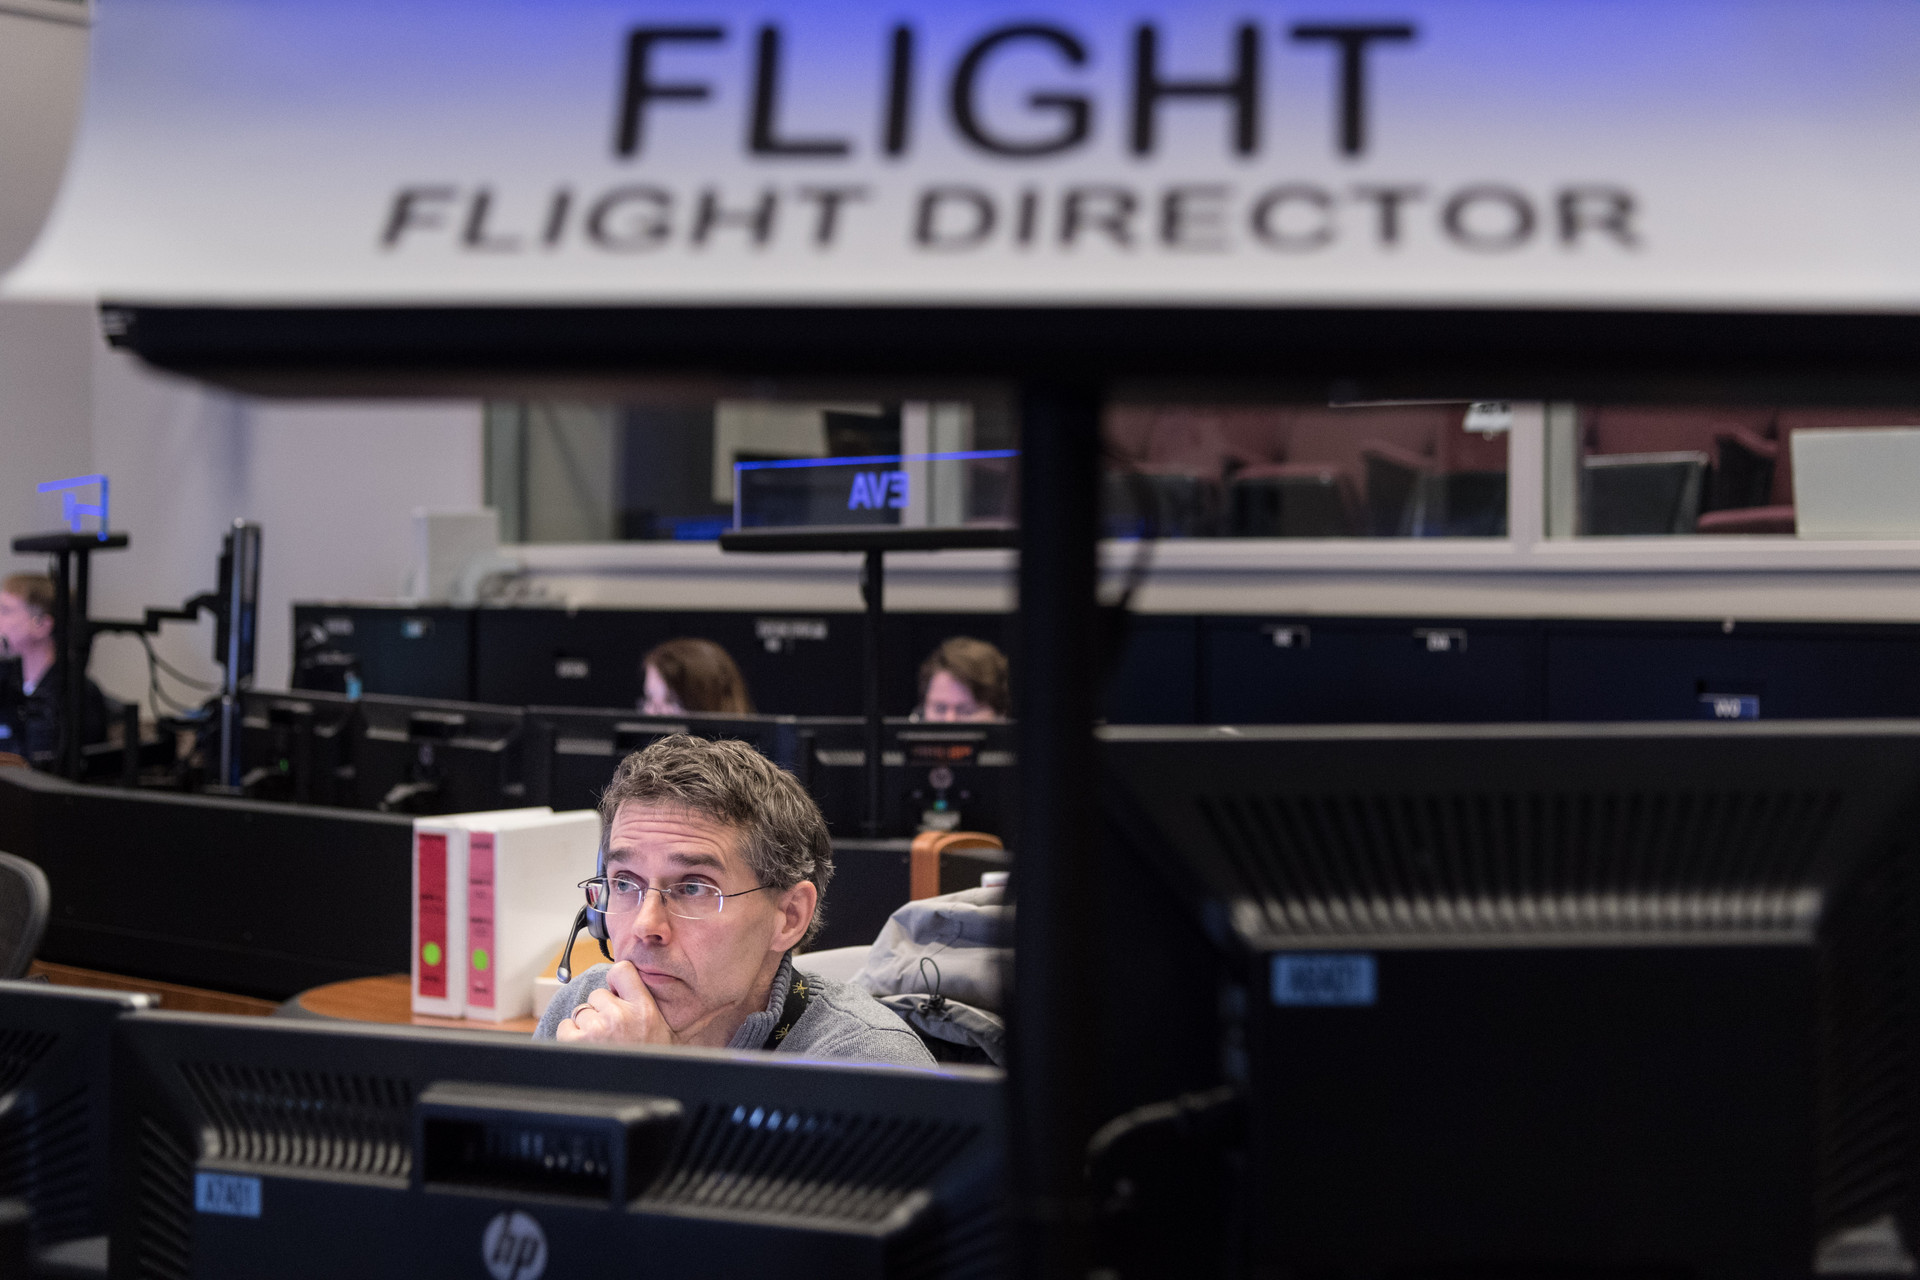 Flight Director Robert Dempsey in Misson Control during Joint Boeing CST-1--/ISS Mission Simulation